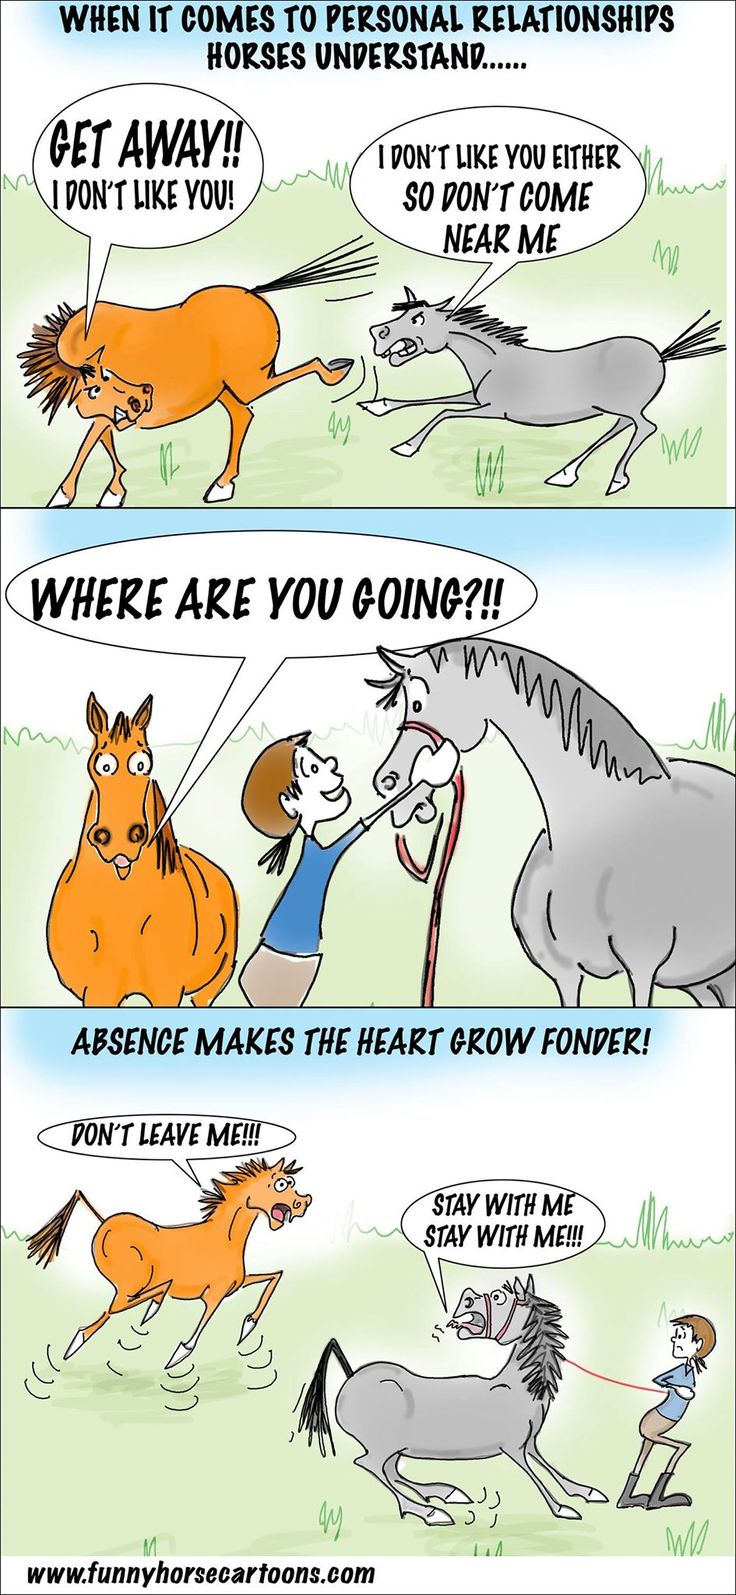 This is so like my two mares